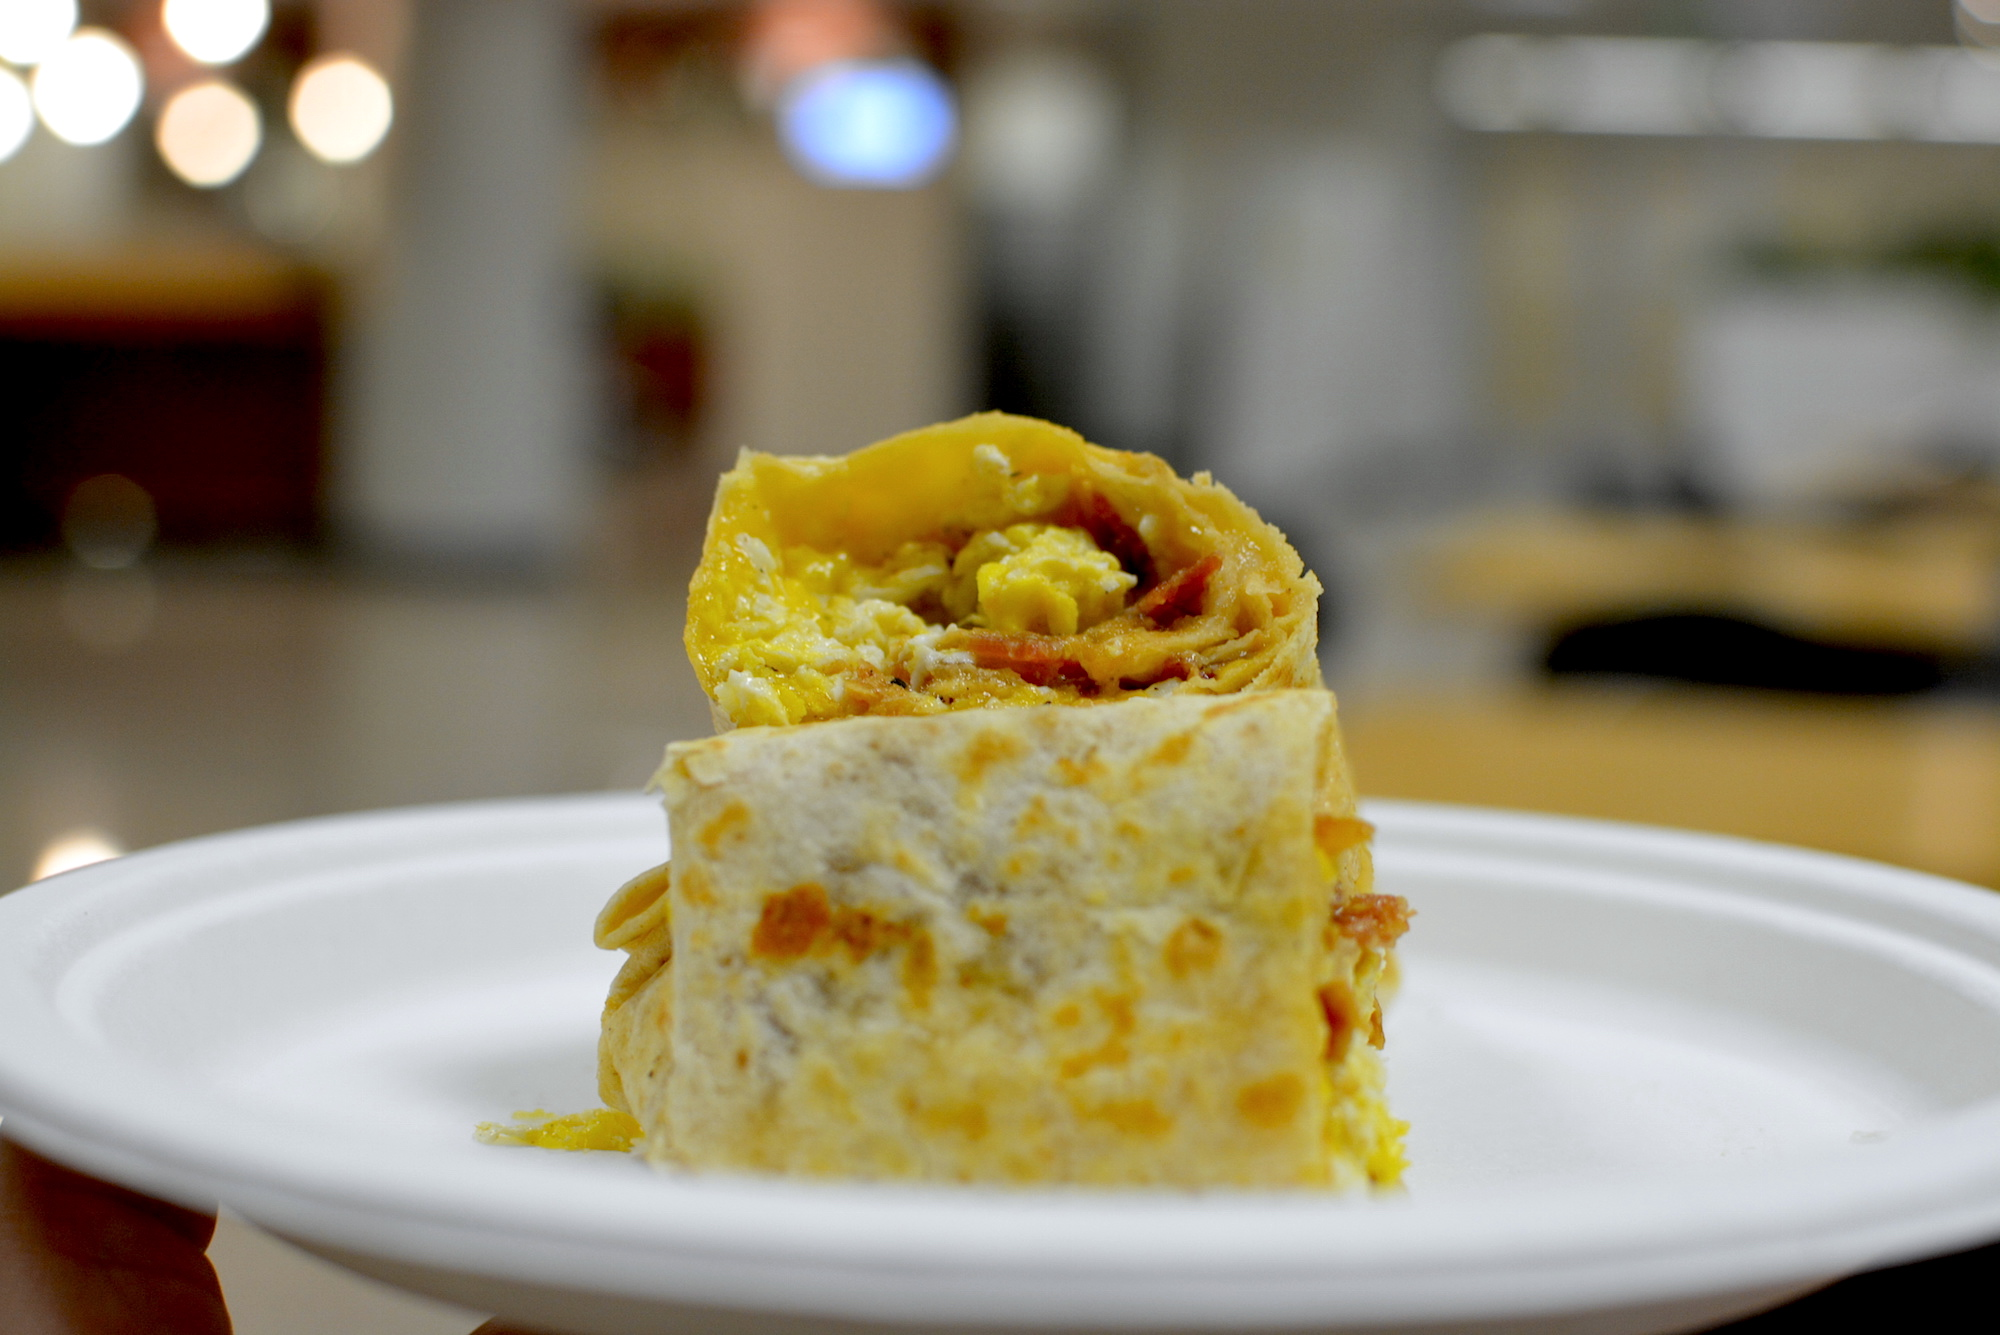 $4 breakfast burrito at the Kenneth Hahn Hall of Administration, Downtown